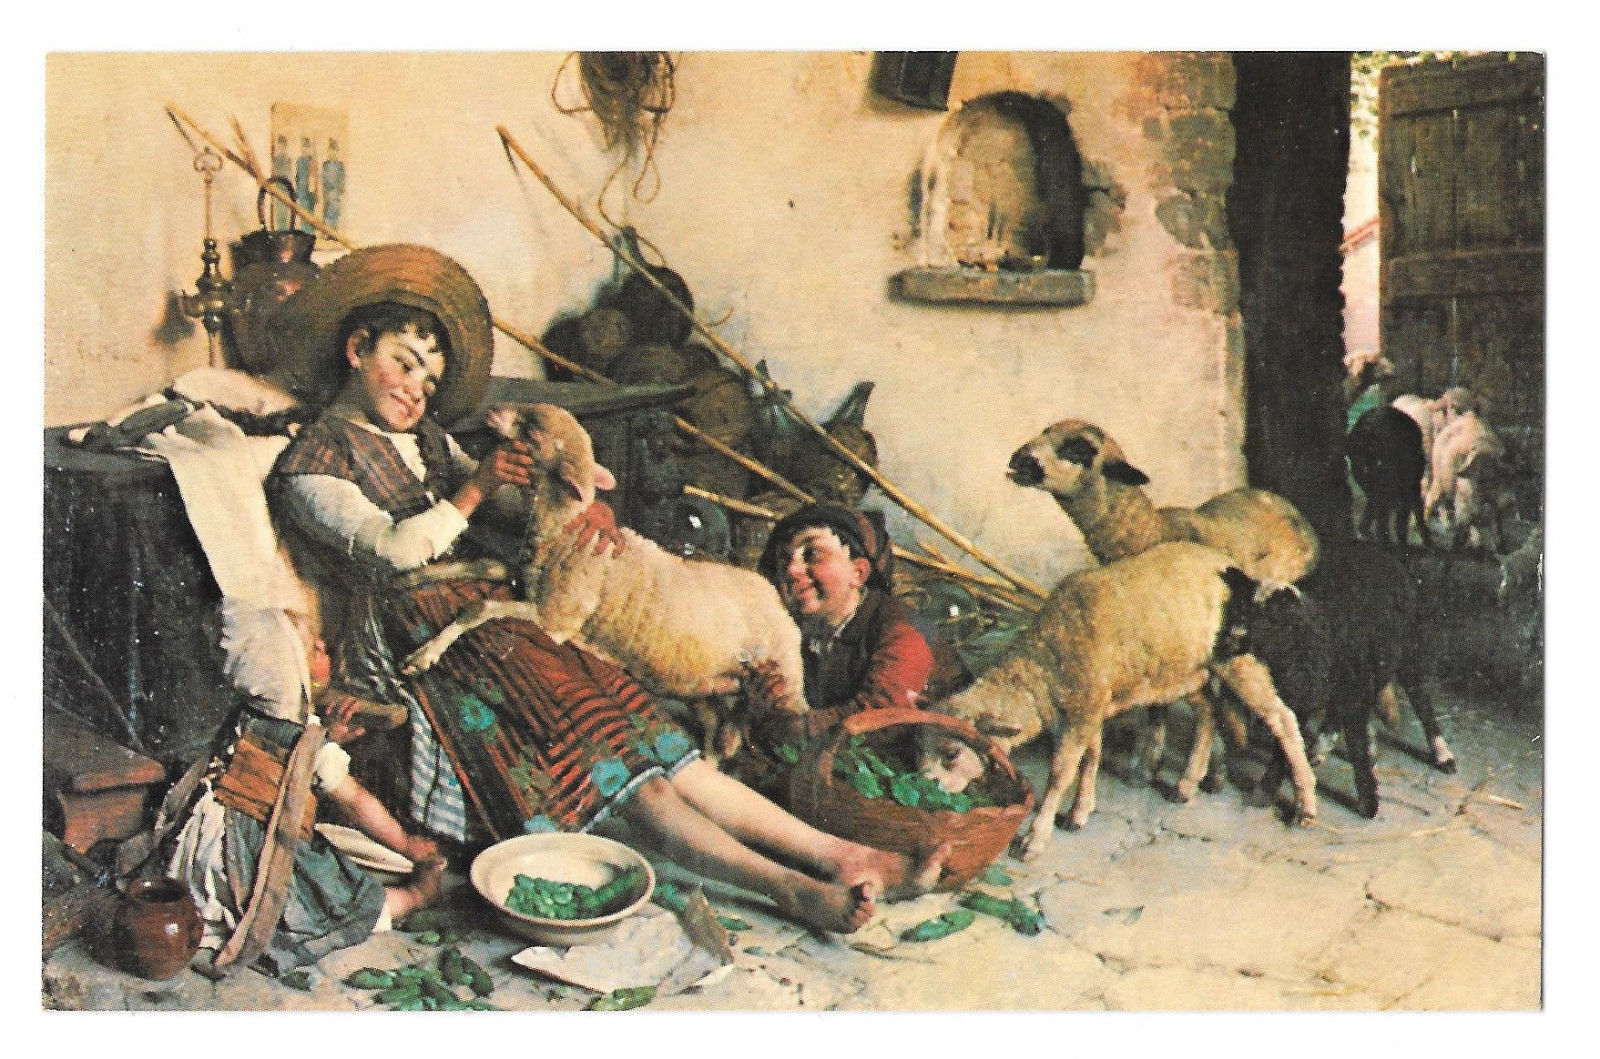 Playmates Boys Sheep Gaetano Chiericci Haussner's Restaurant Baltimore MD Art